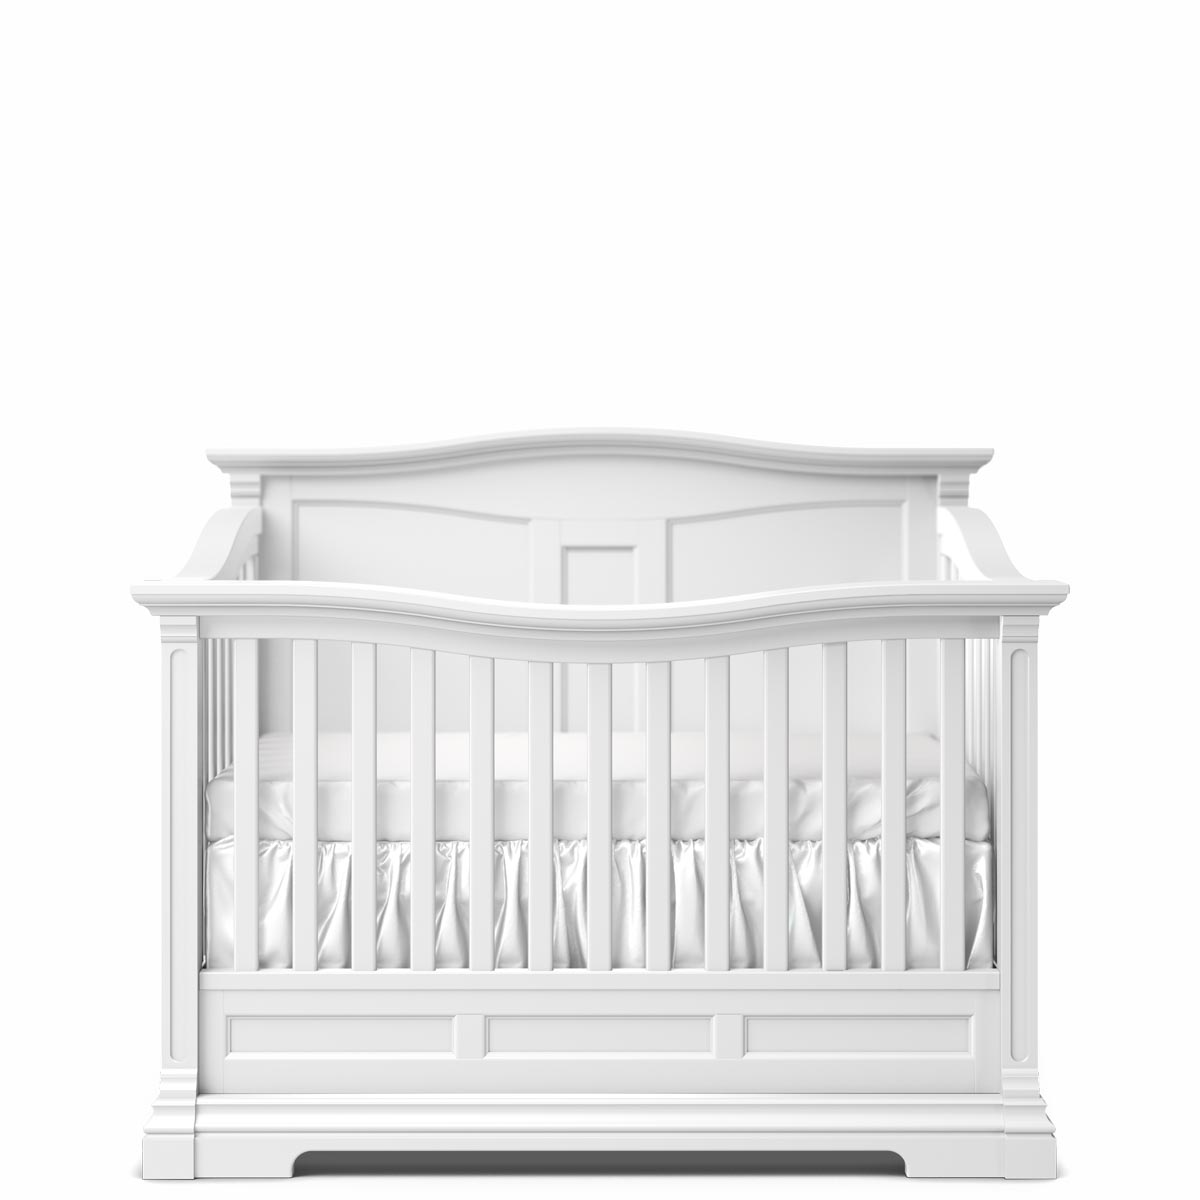 Romina Furniture Imperio Panel Crib - Solid White